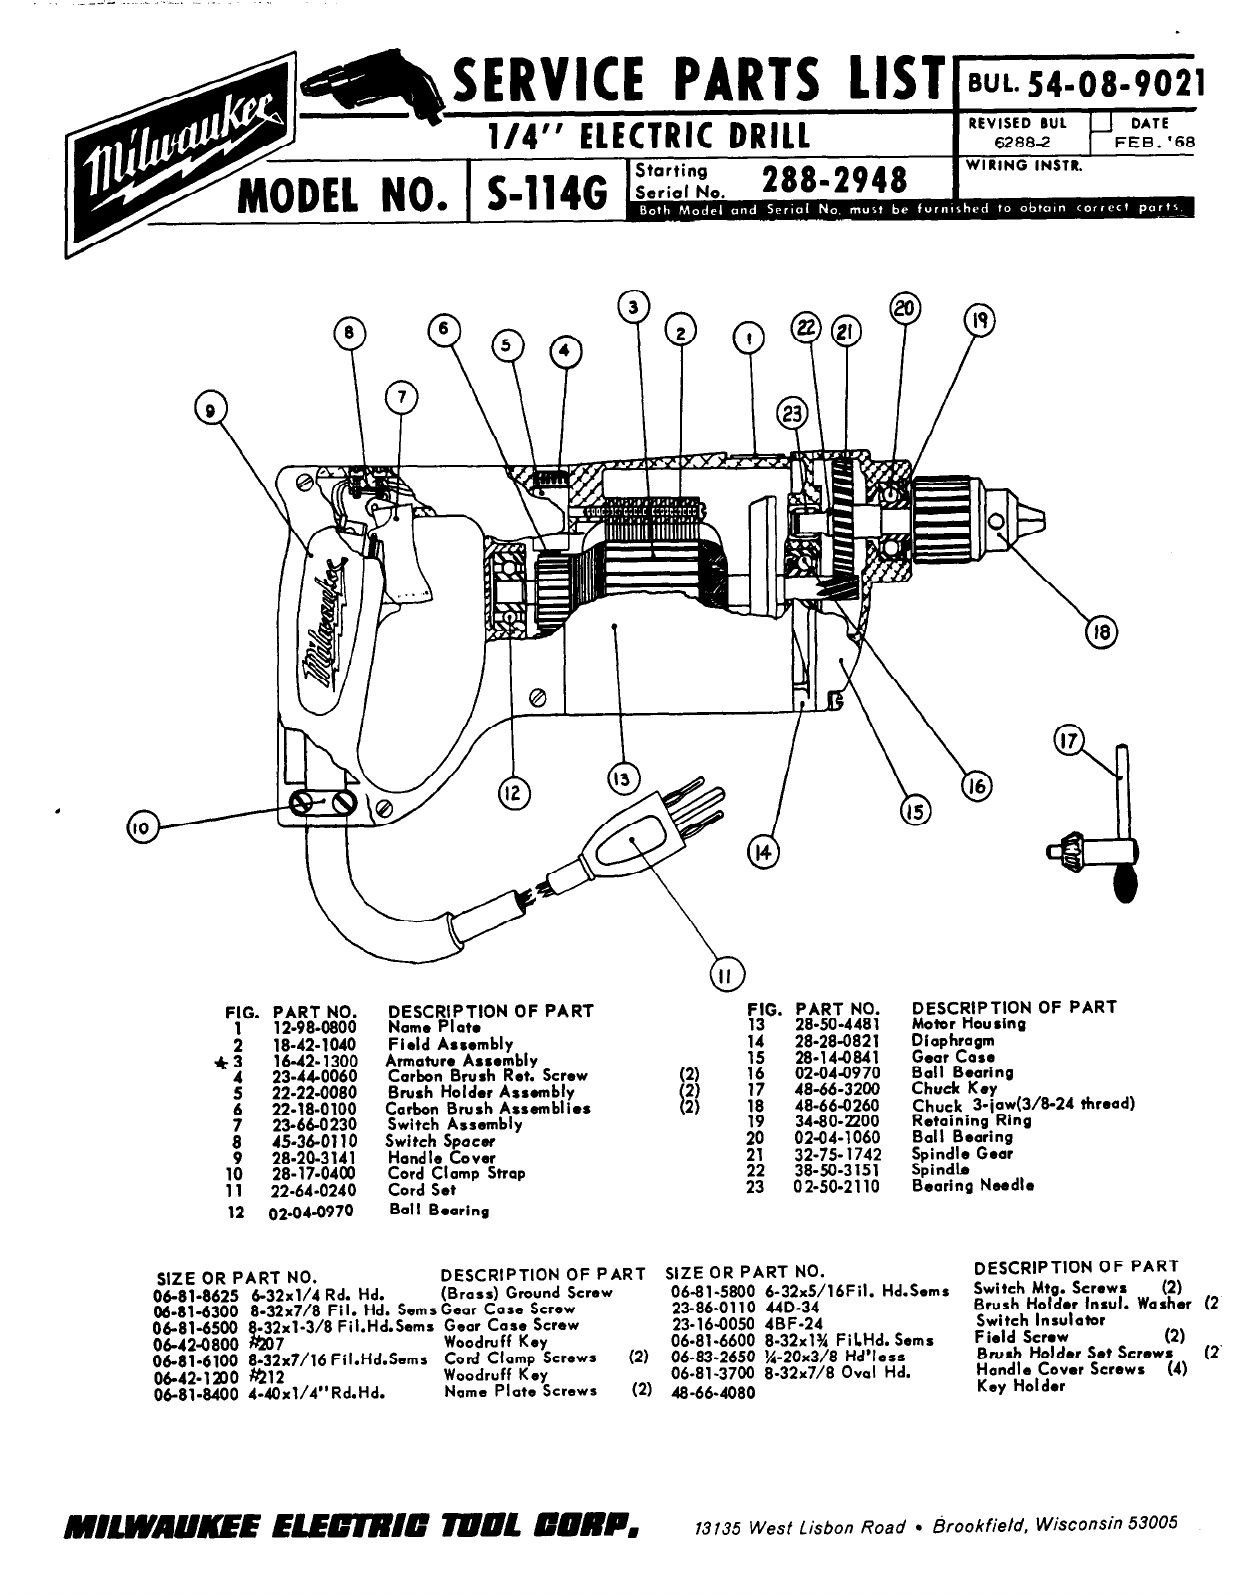 1c88c617 d4cf 440c be5d ab7634a91492 bg1 milwaukee drill s 114g user guide manualsonline com milwaukee hole hawg wiring diagram at bakdesigns.co